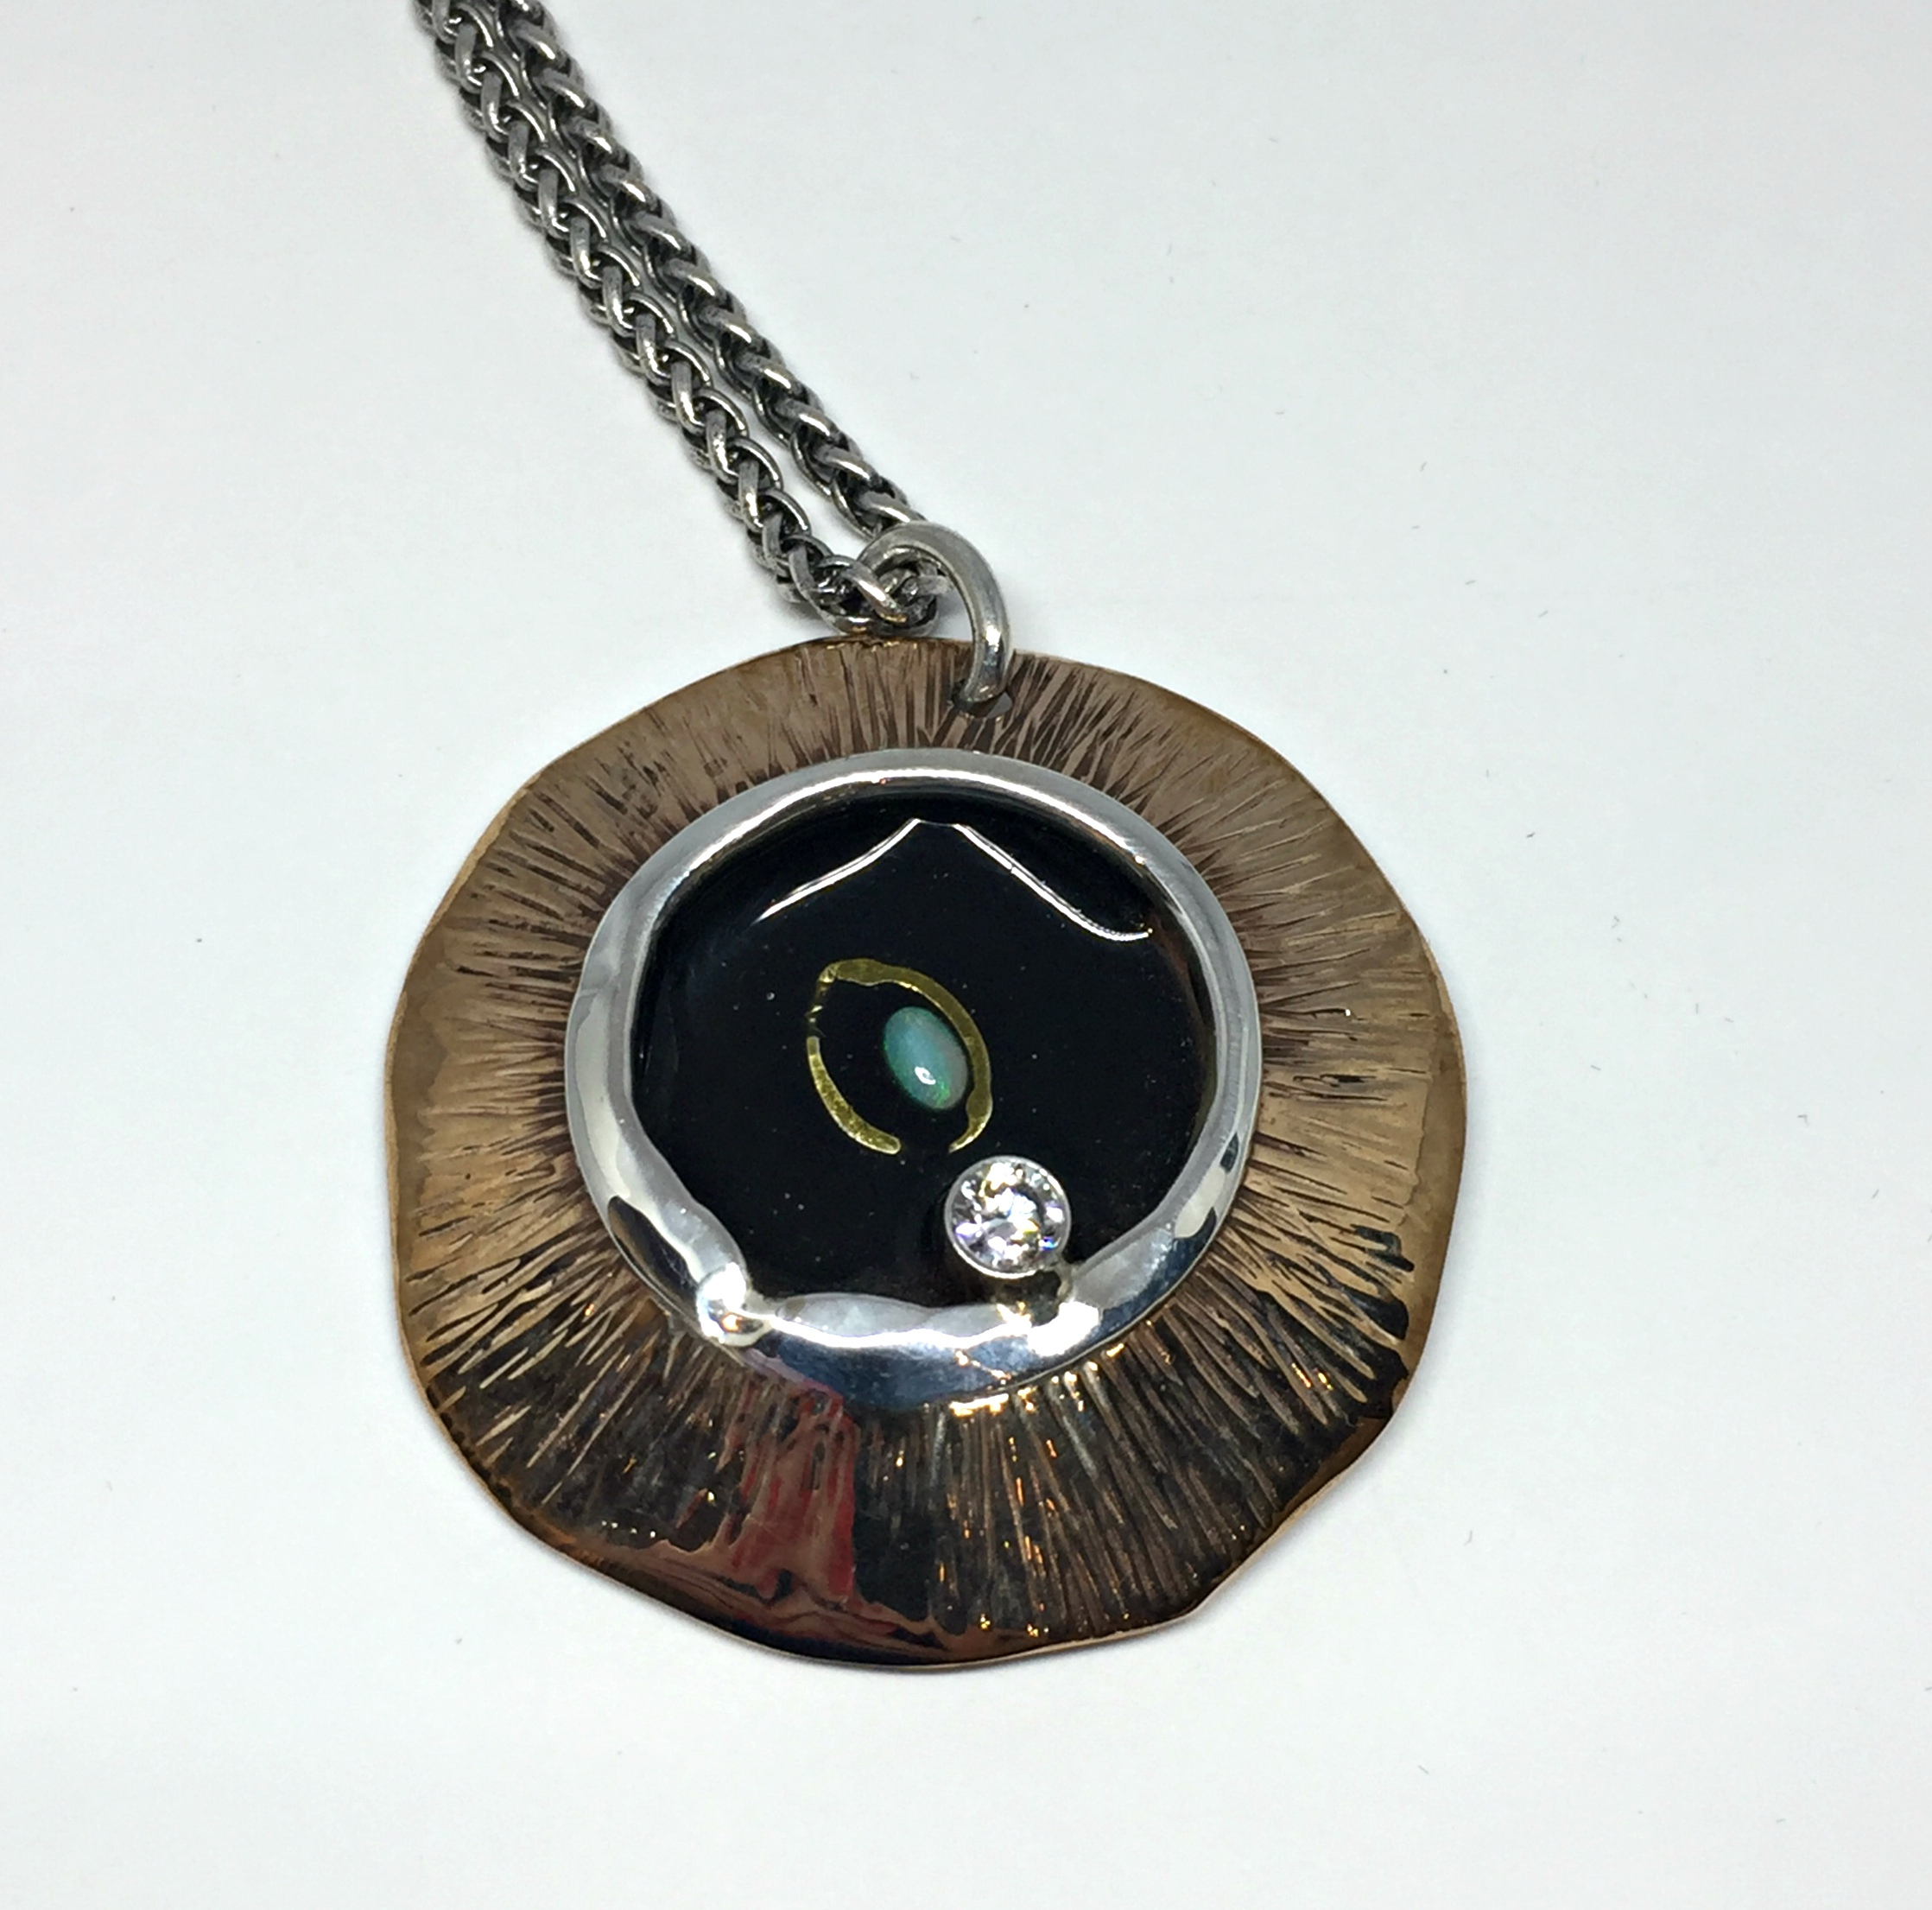 Peek a boo!, one of a kind necklace by Karyn Chopik | Effusion Art Gallery + Cast Glass Studio, Invermere BC